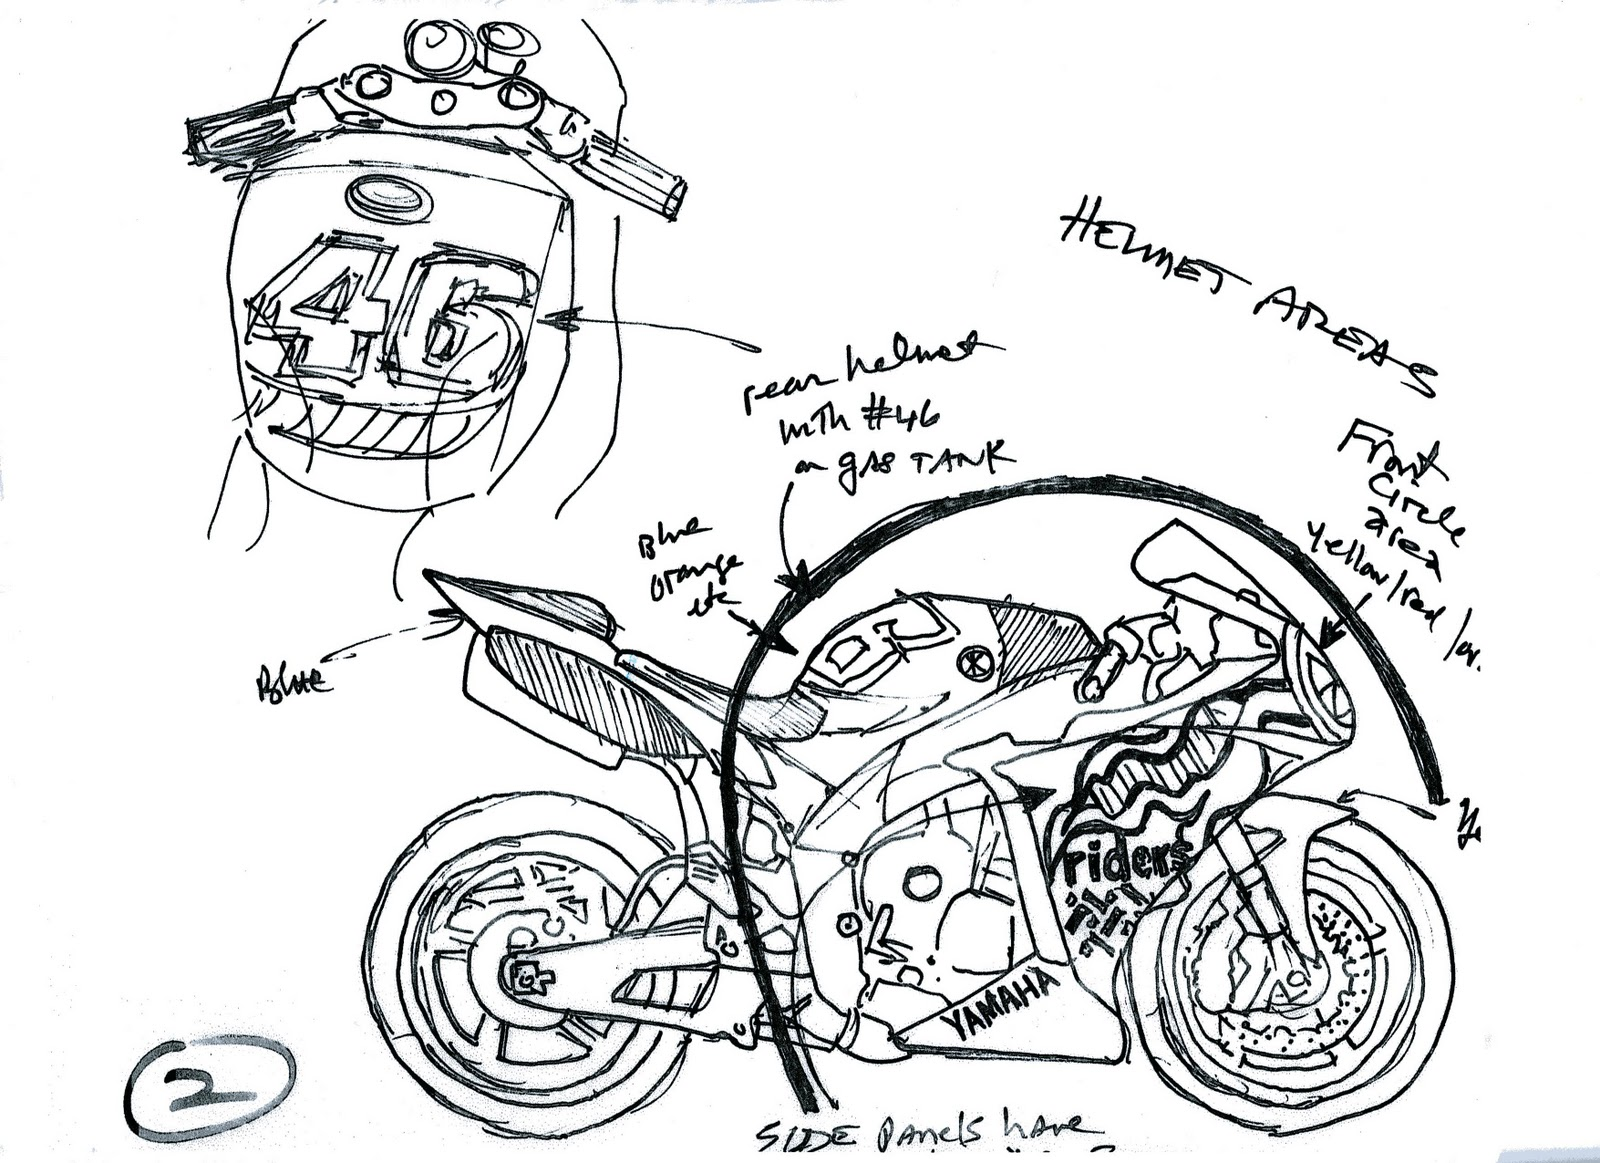 The Emde Report Evolution Of The Rossi Riders For Health